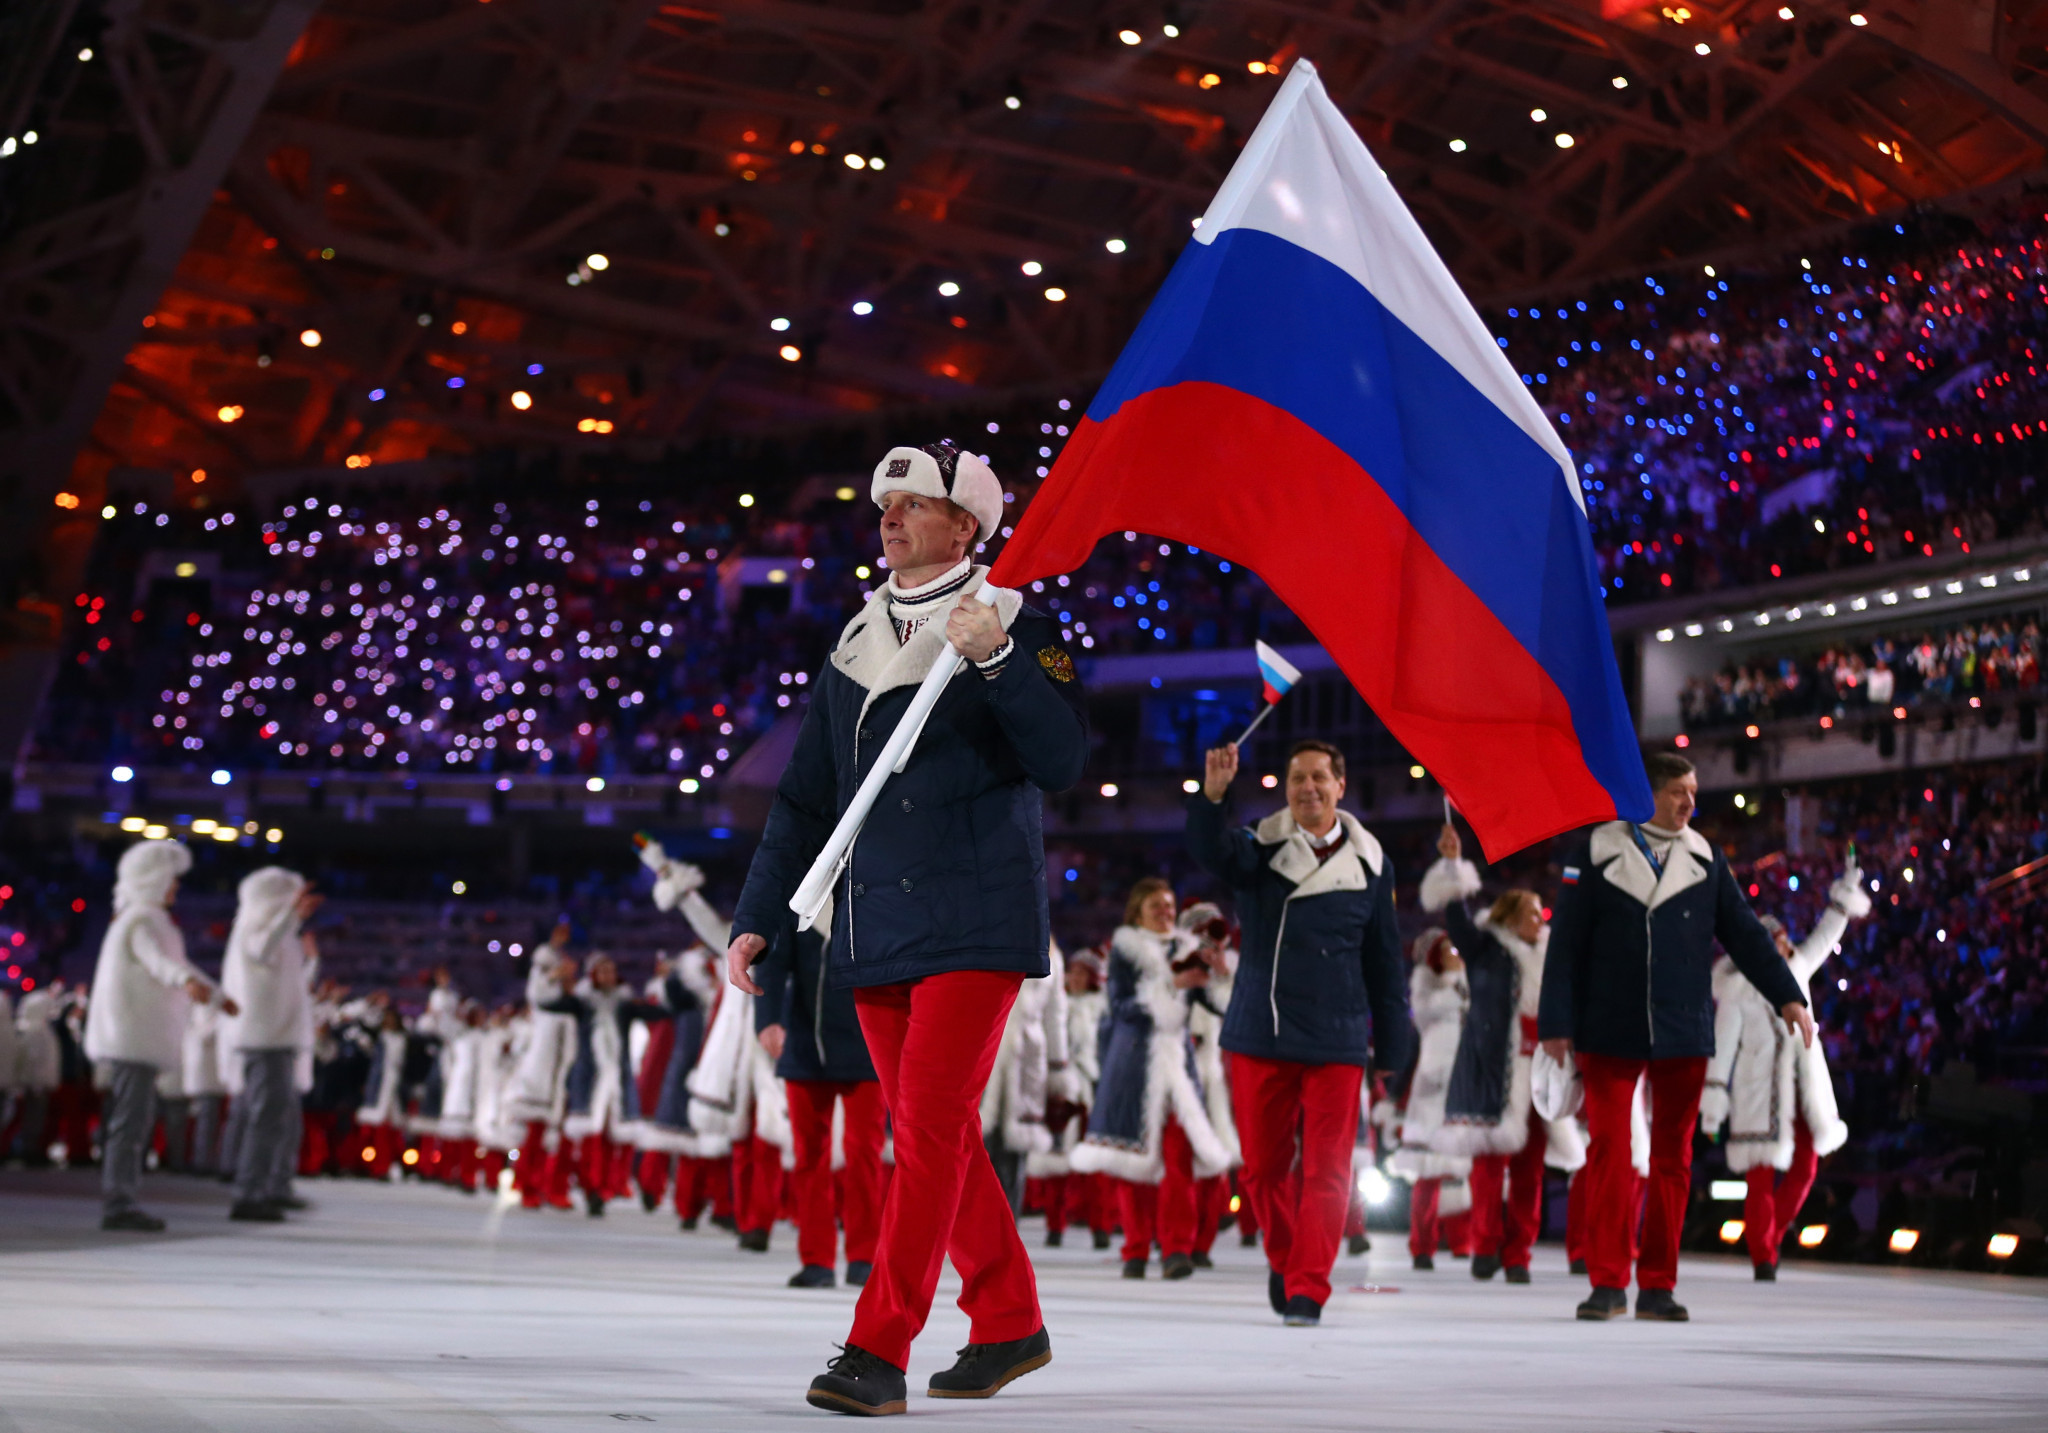 Russia athletes will not compete under their own flag at Pyeongchang 2018, but still should be heavily represented ©Getty Images